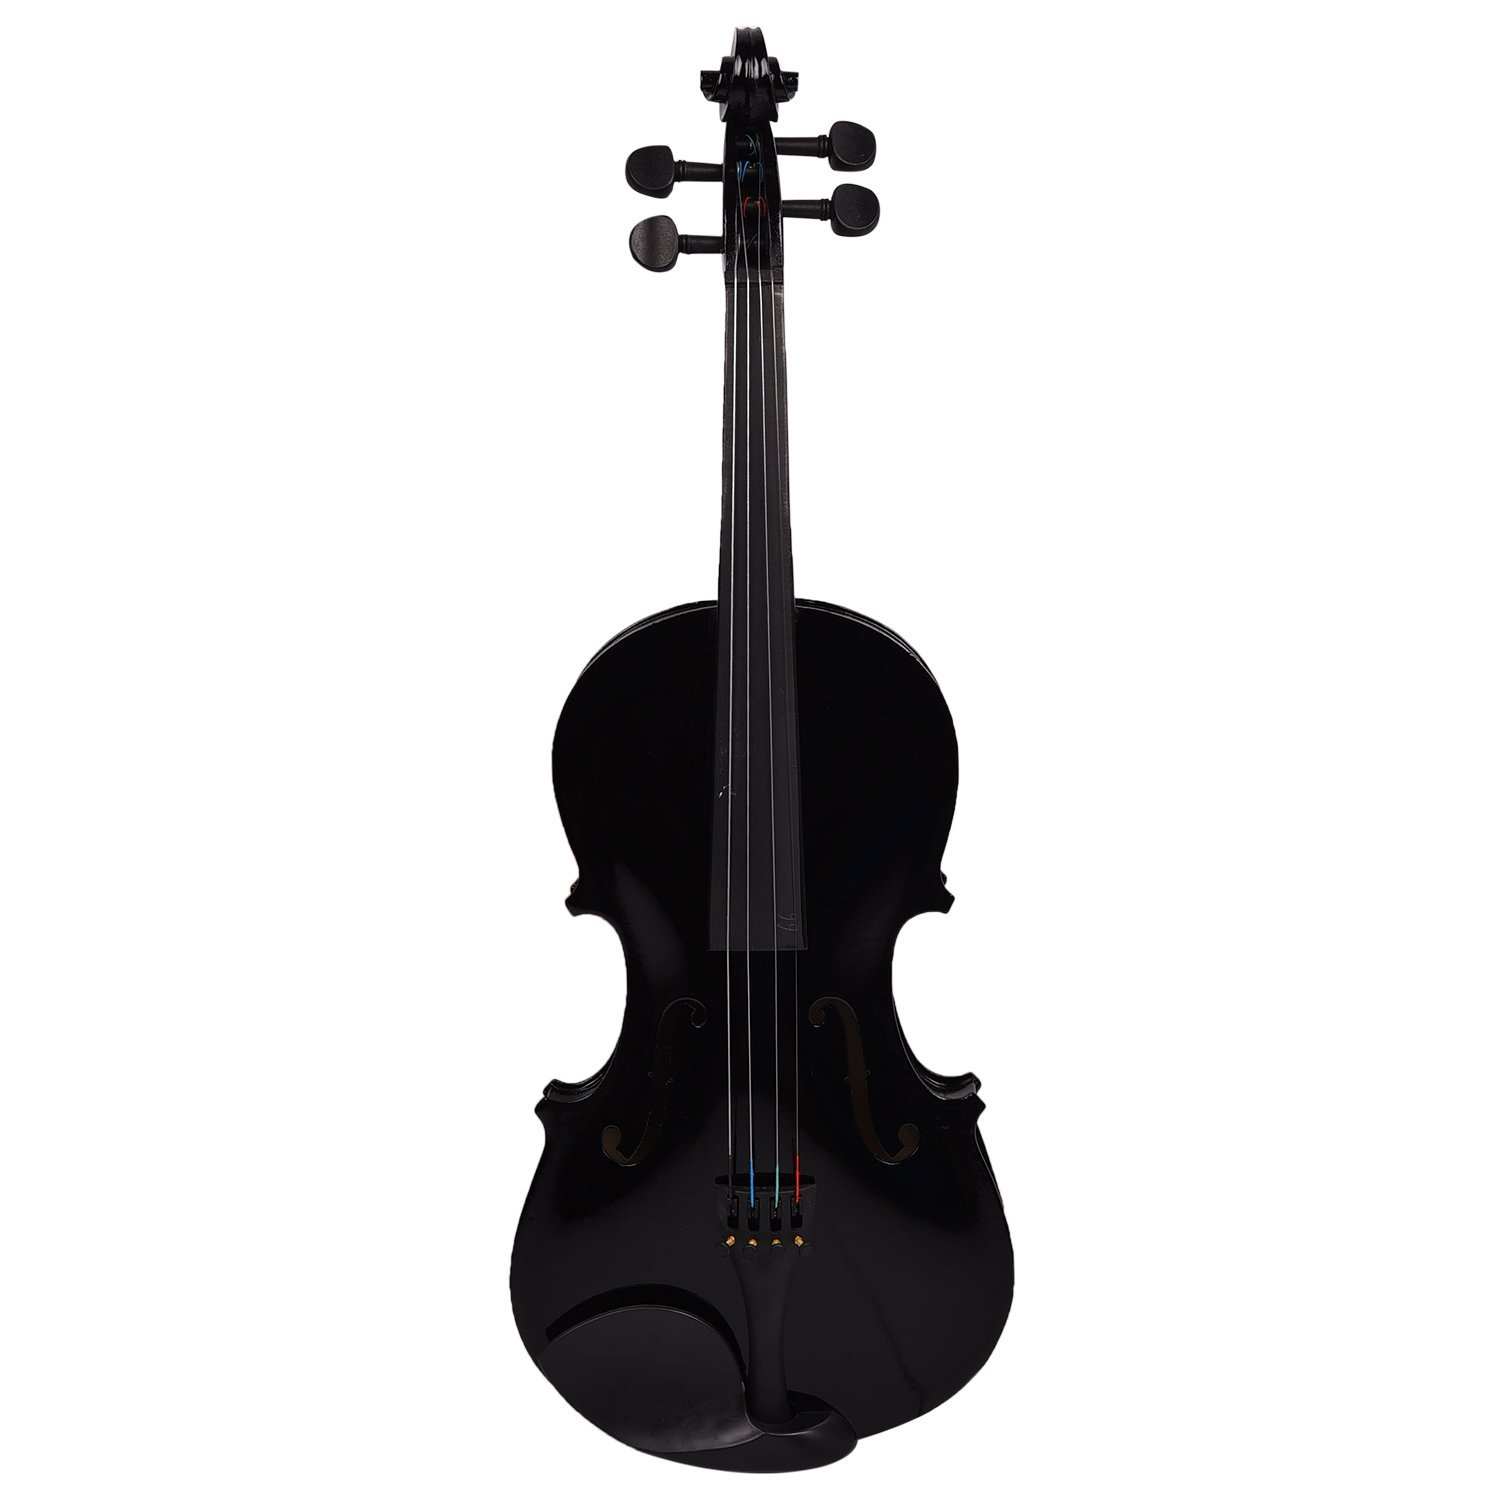 Kadence Vivaldi Violin, Pine Wood Top